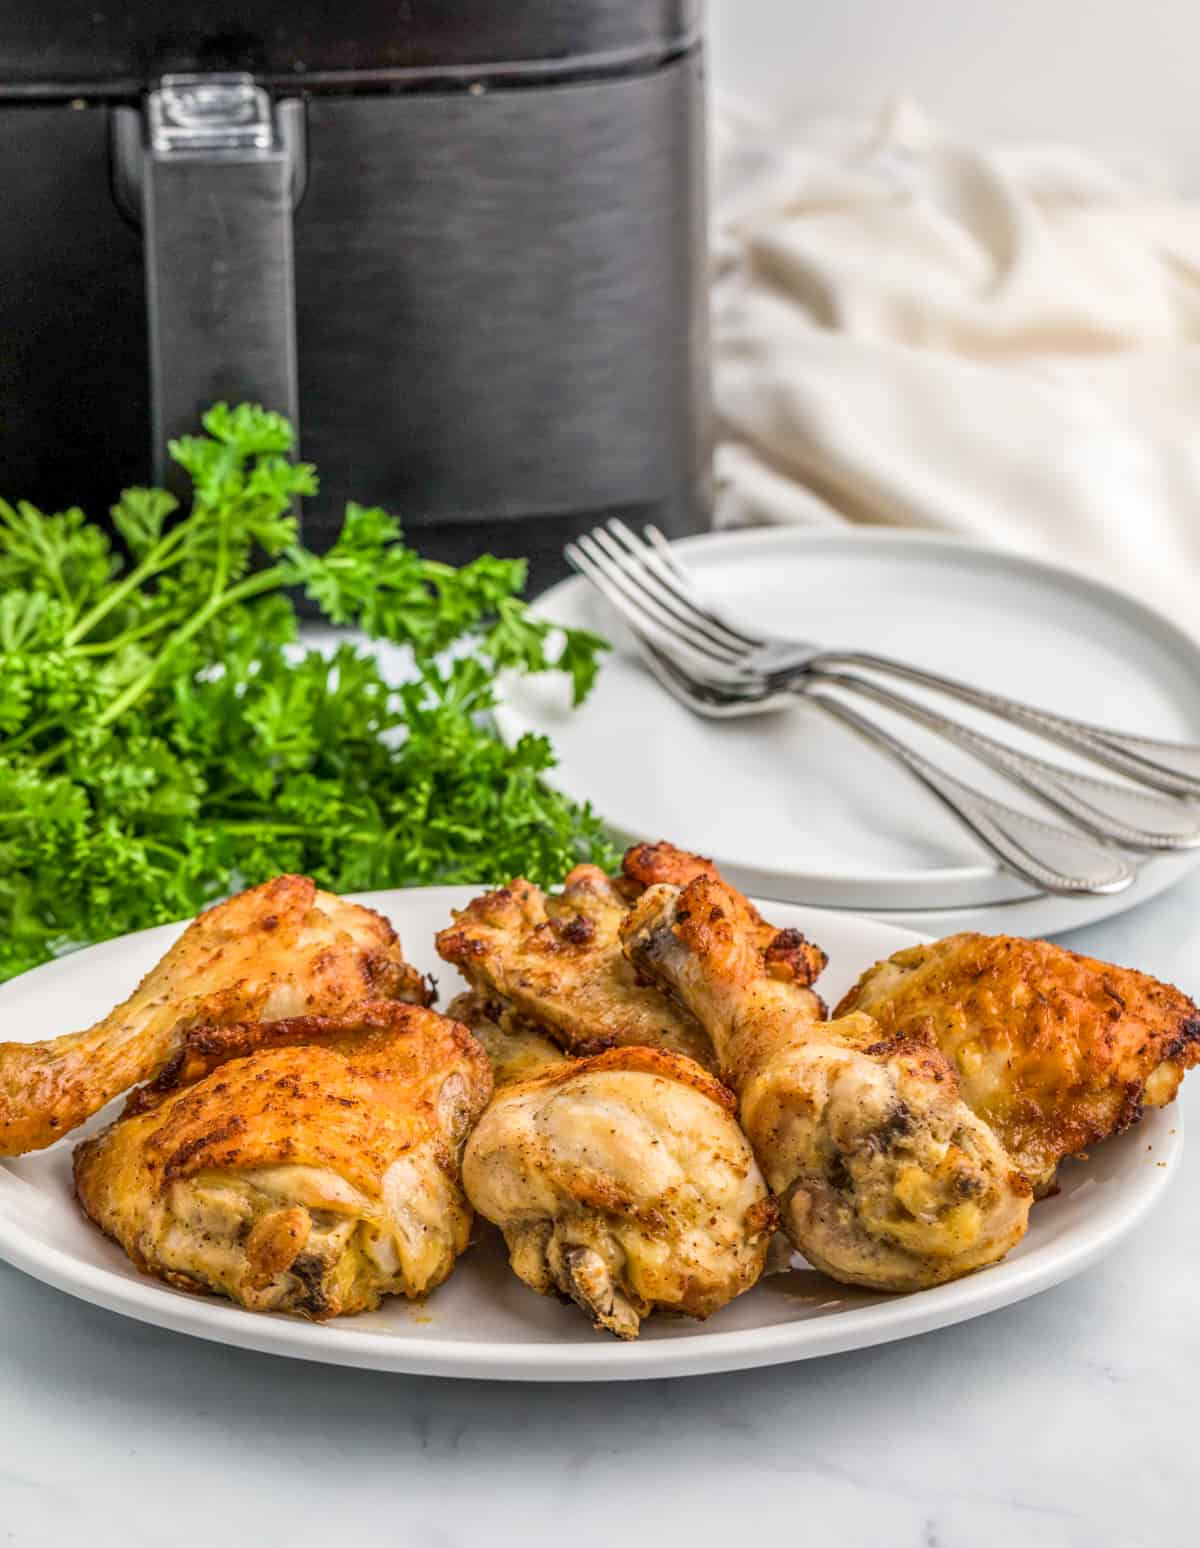 Finished chicken on white plate with air fryer in background